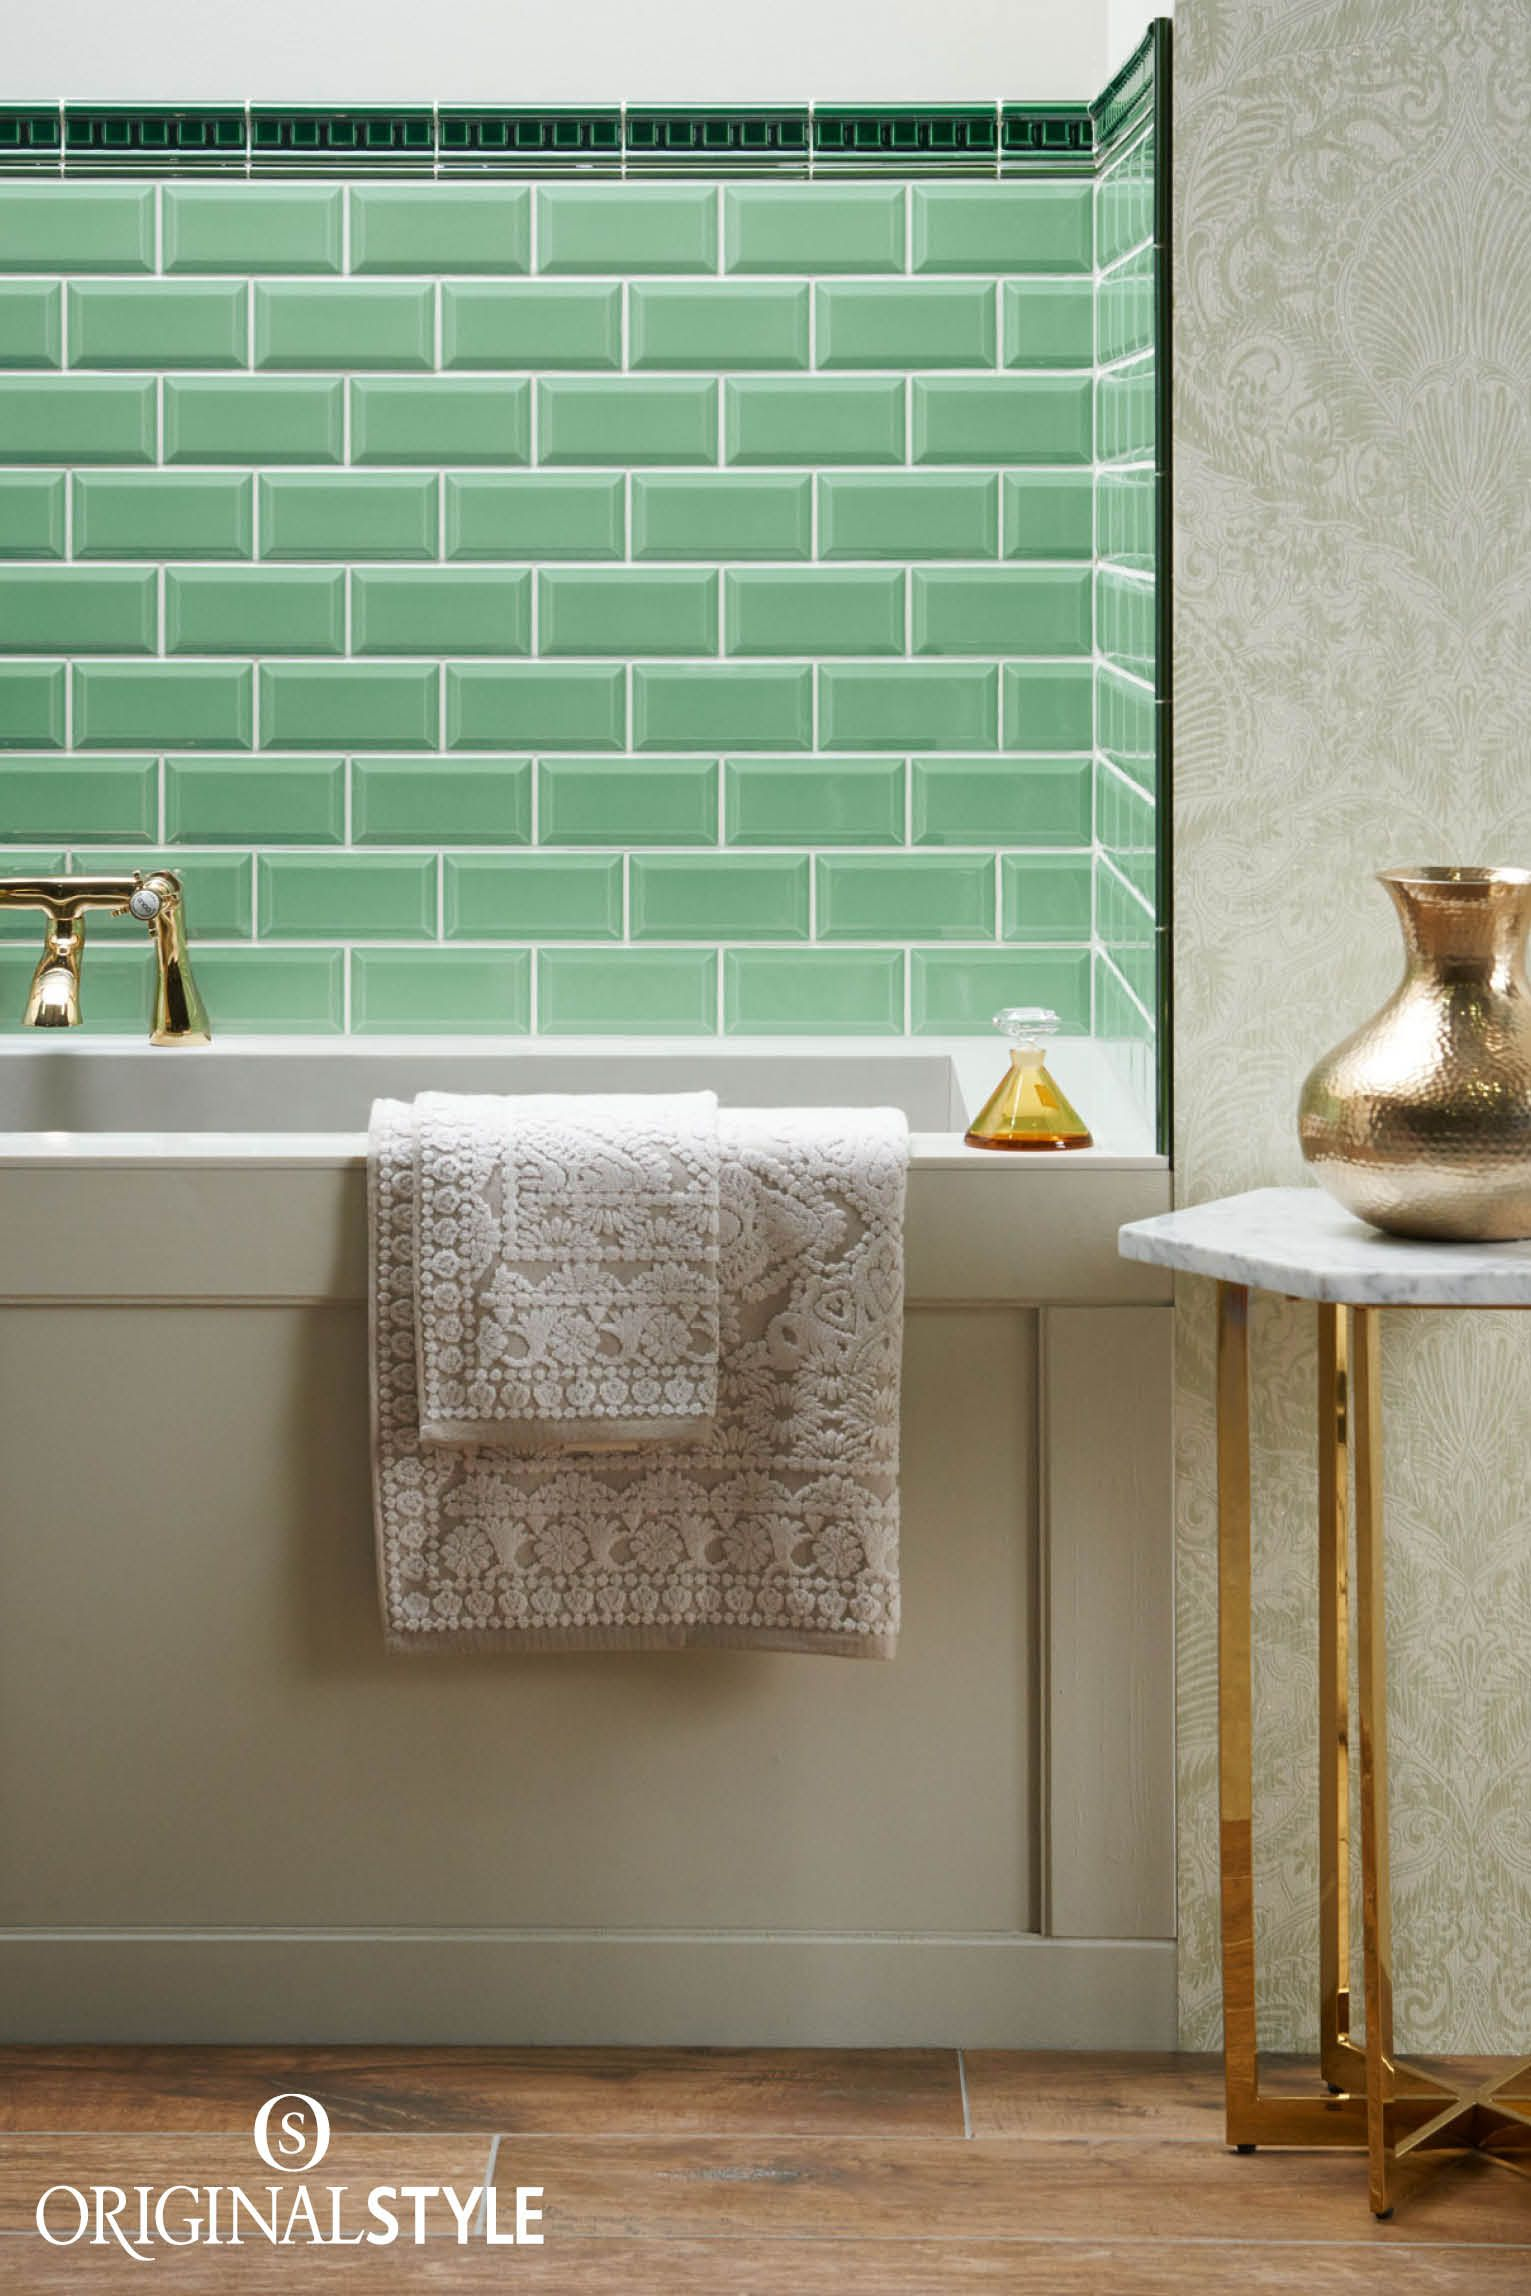 Bathroom Tiles Victorian Style victorian green dentil moulding tile | metro tiles, wall tiles and